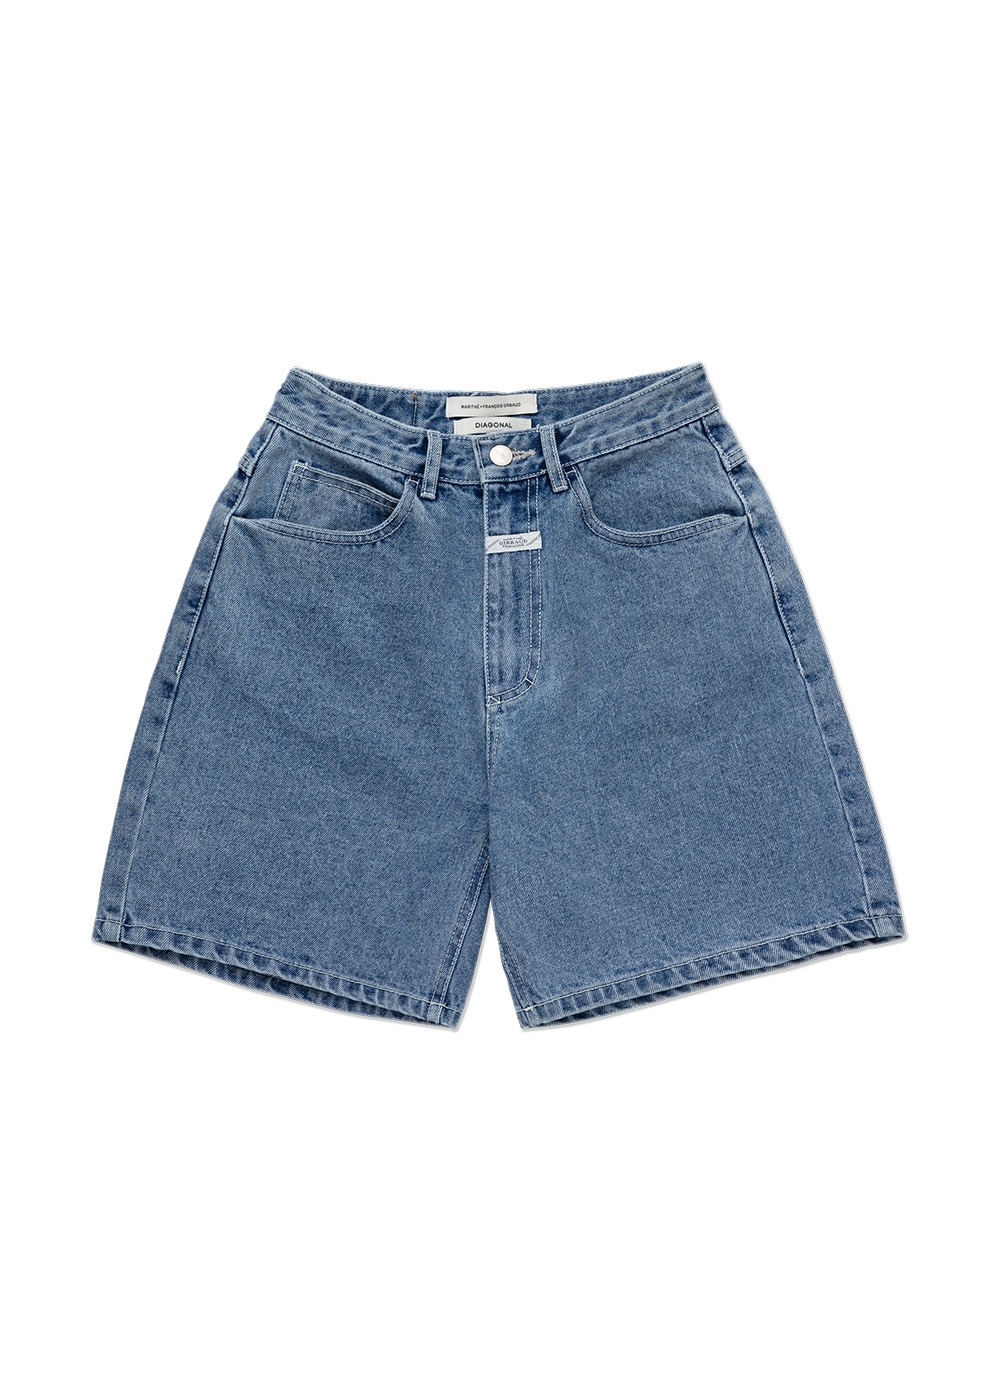 MARITHE X DIAGONAL DENIM SHORTS light indigo